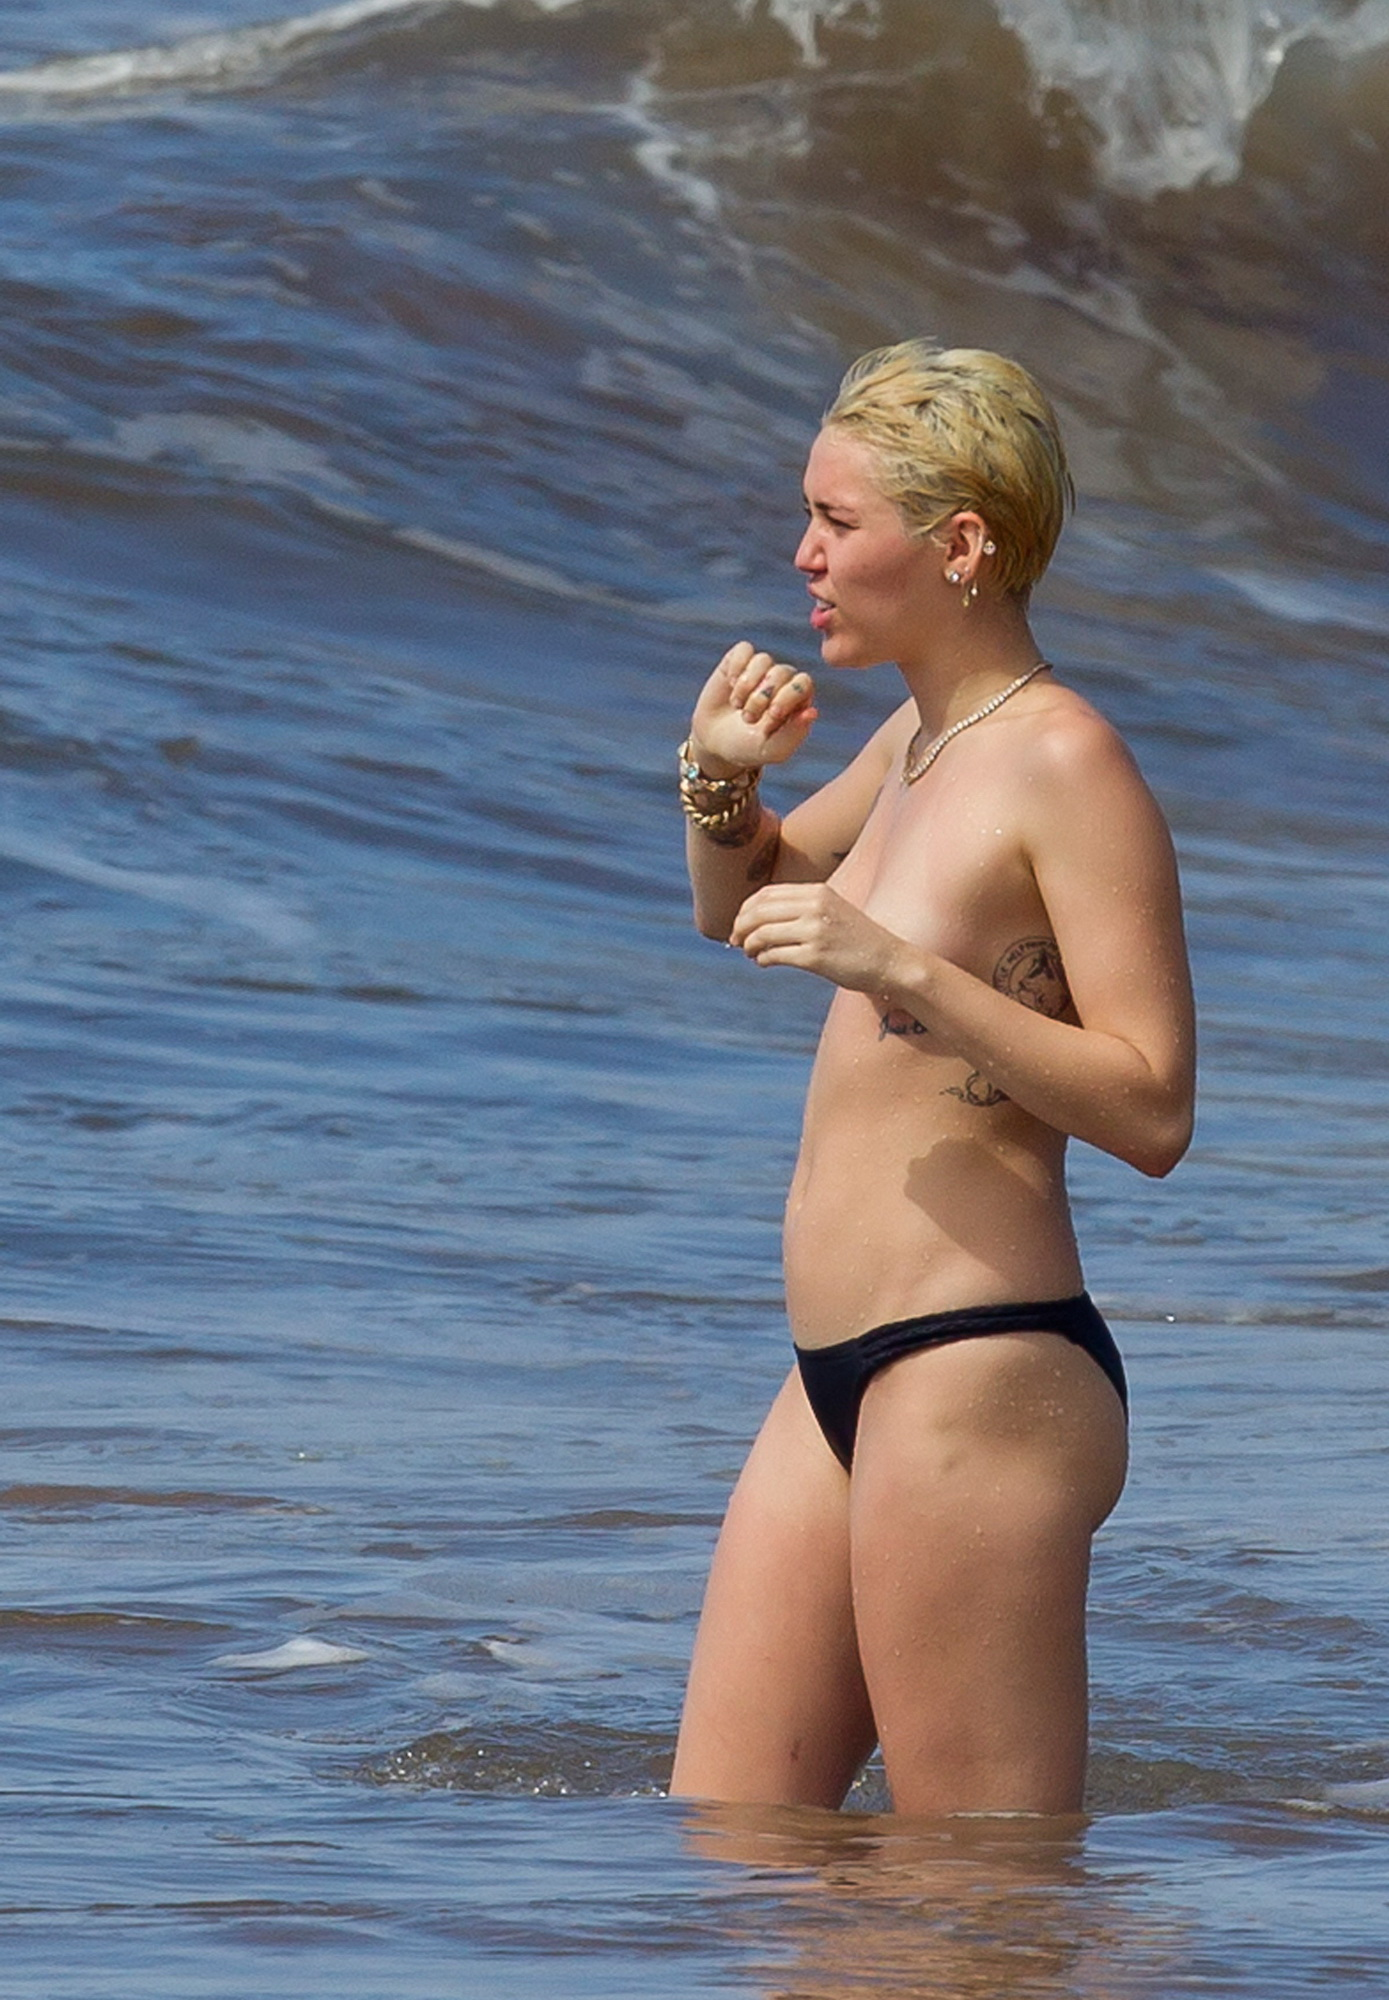 Miley Cyrus pussy showing